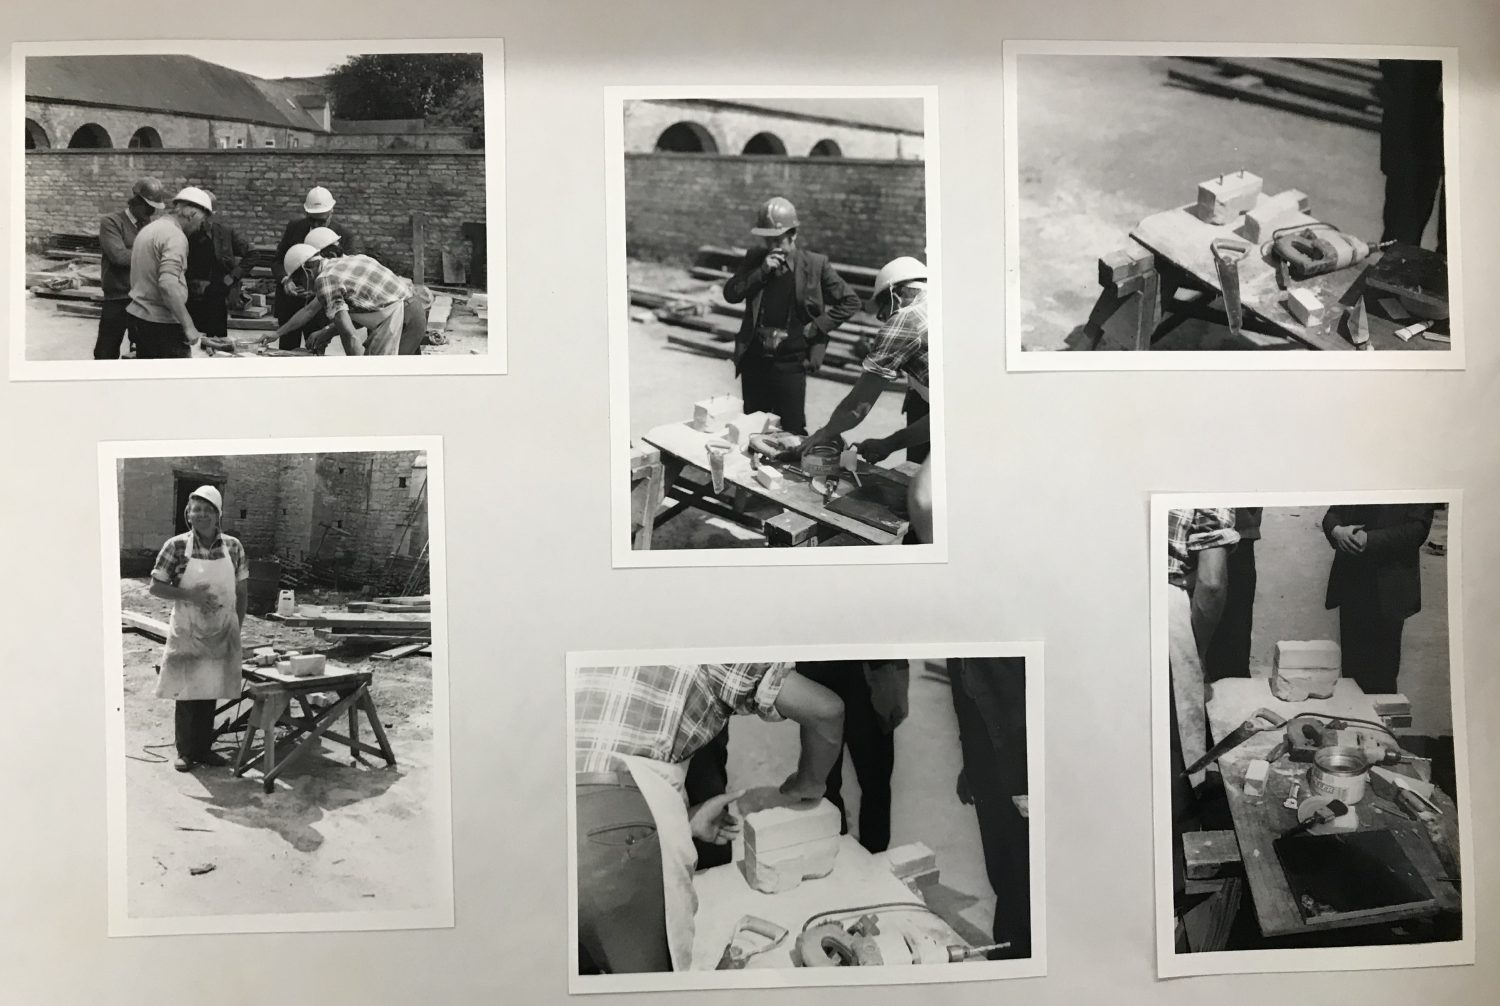 Photographs of some of the individuals who worked on the barn during its reconstruction